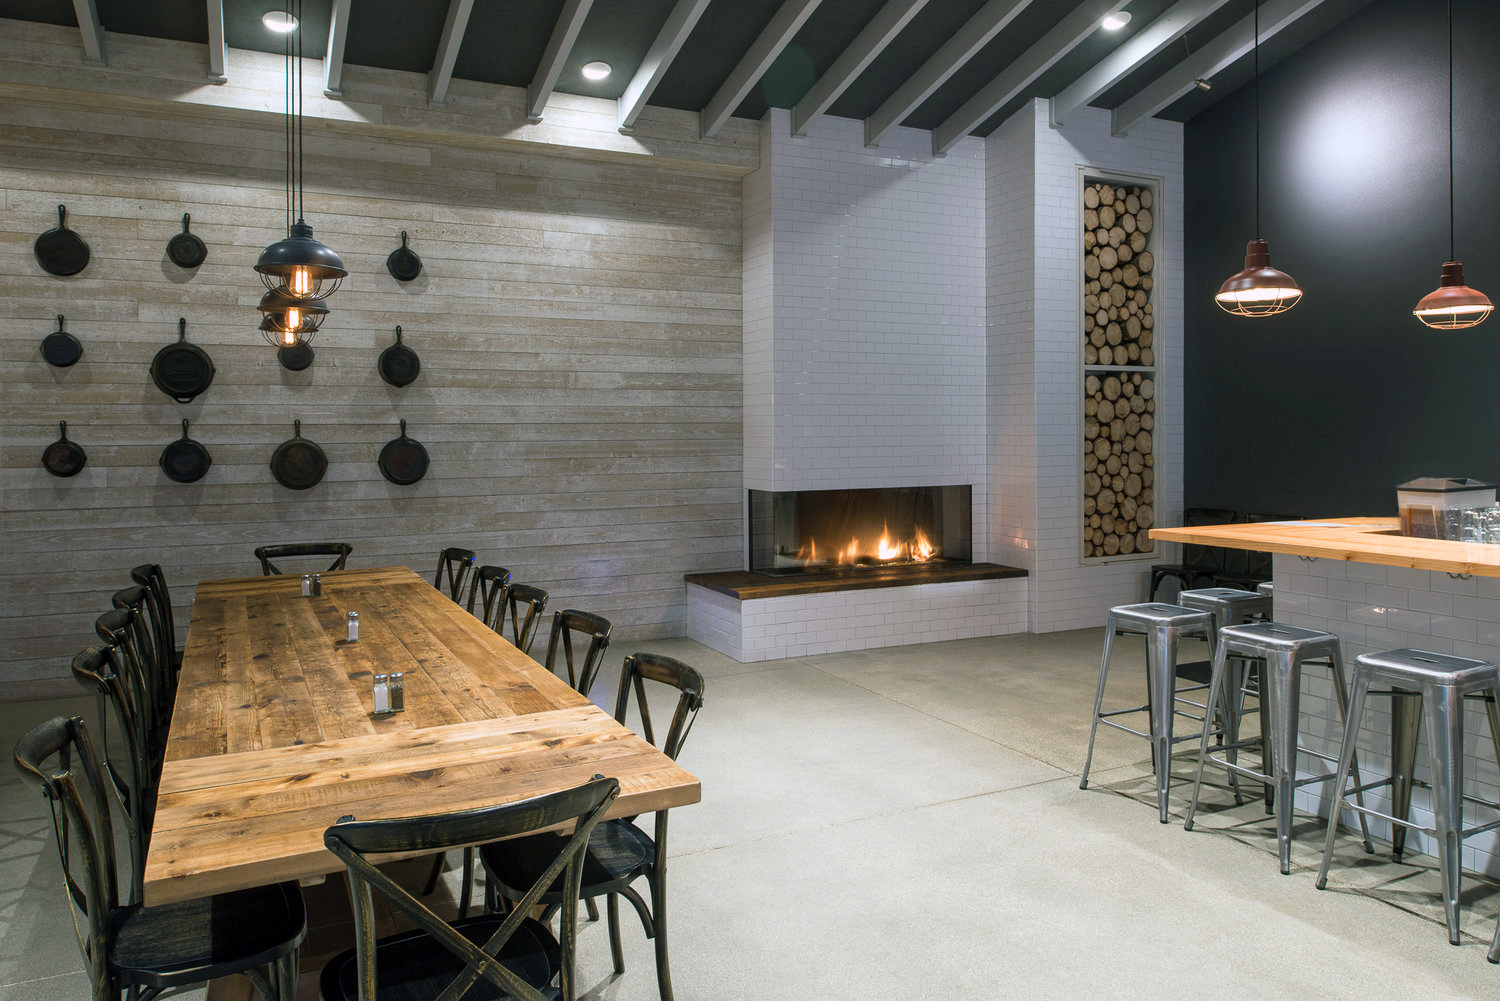 Flexible event space with a fireplace and bar inside Farmhouse Burgers, BBQ & Events located in Sandpoint + Ponderay, Idaho